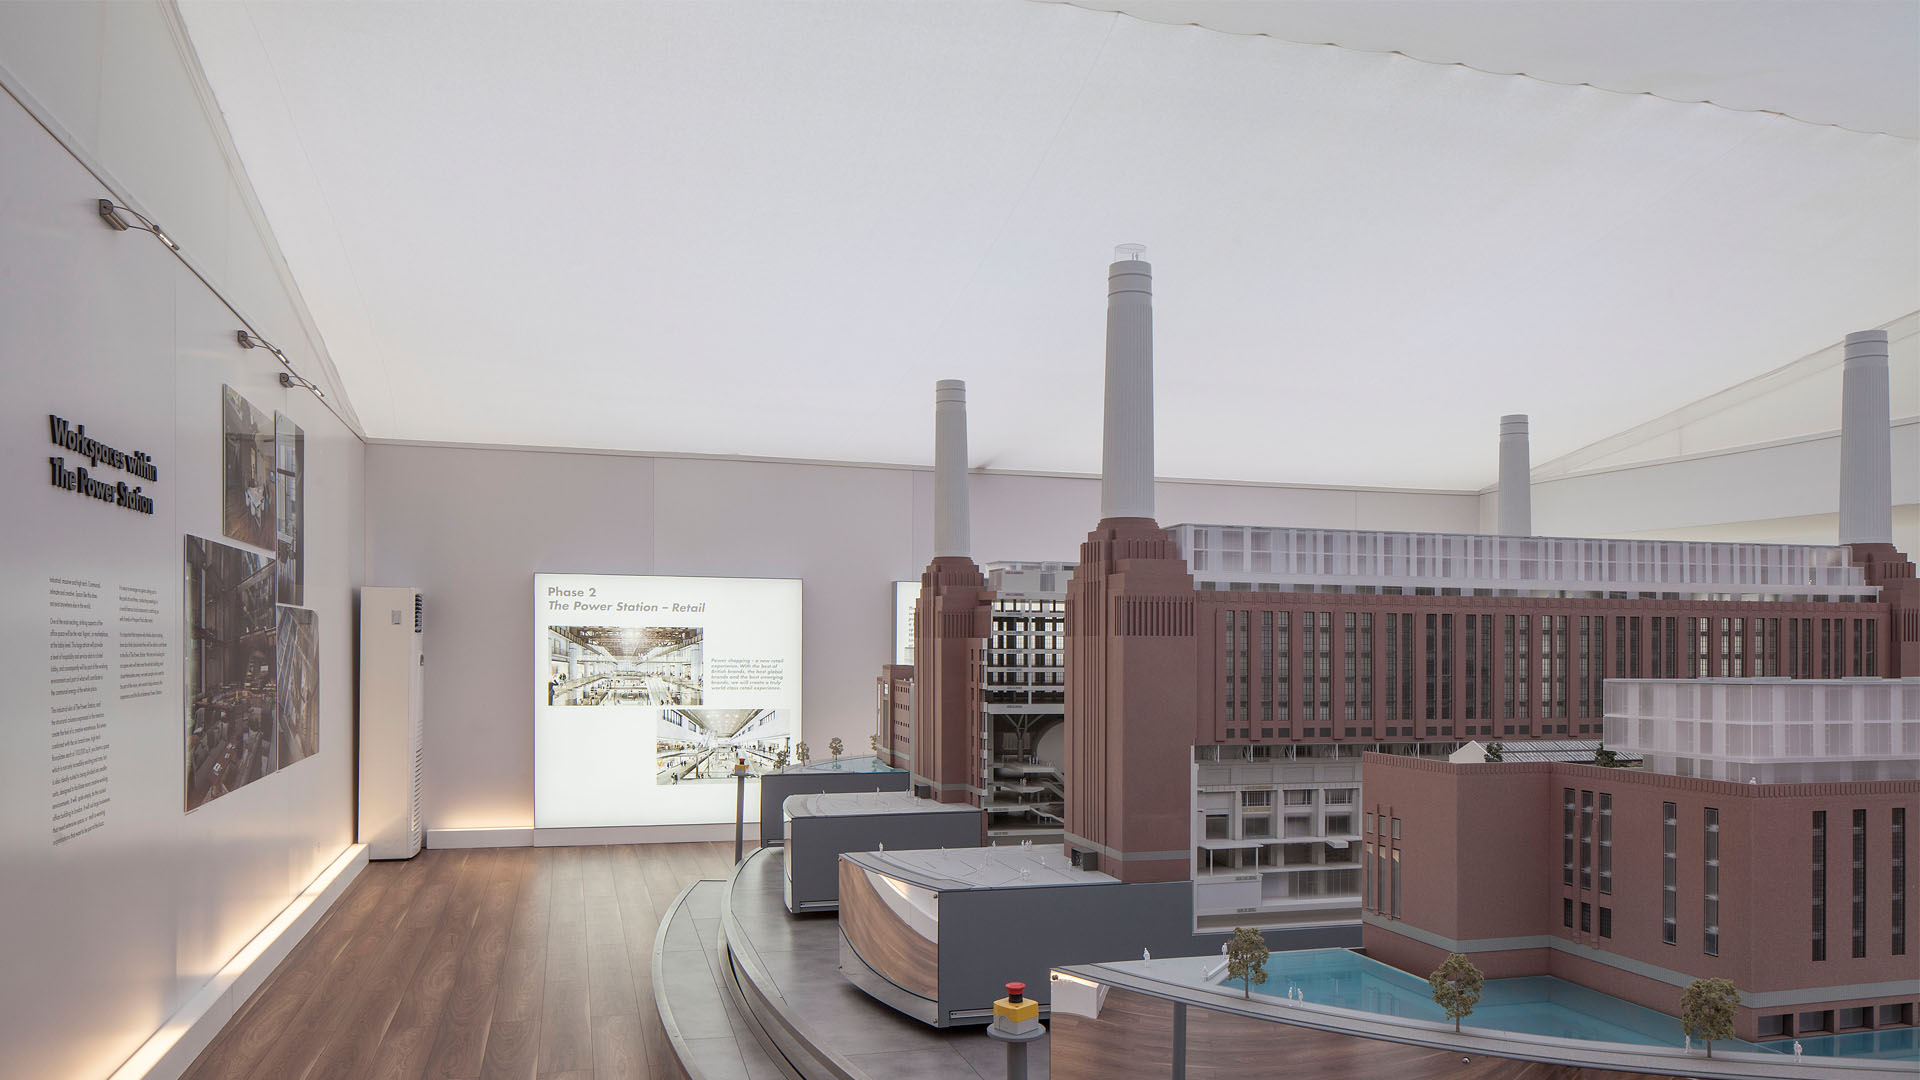 Property Marketing Agency | Wordsearch | Battersea Power Station Exhibition Blog